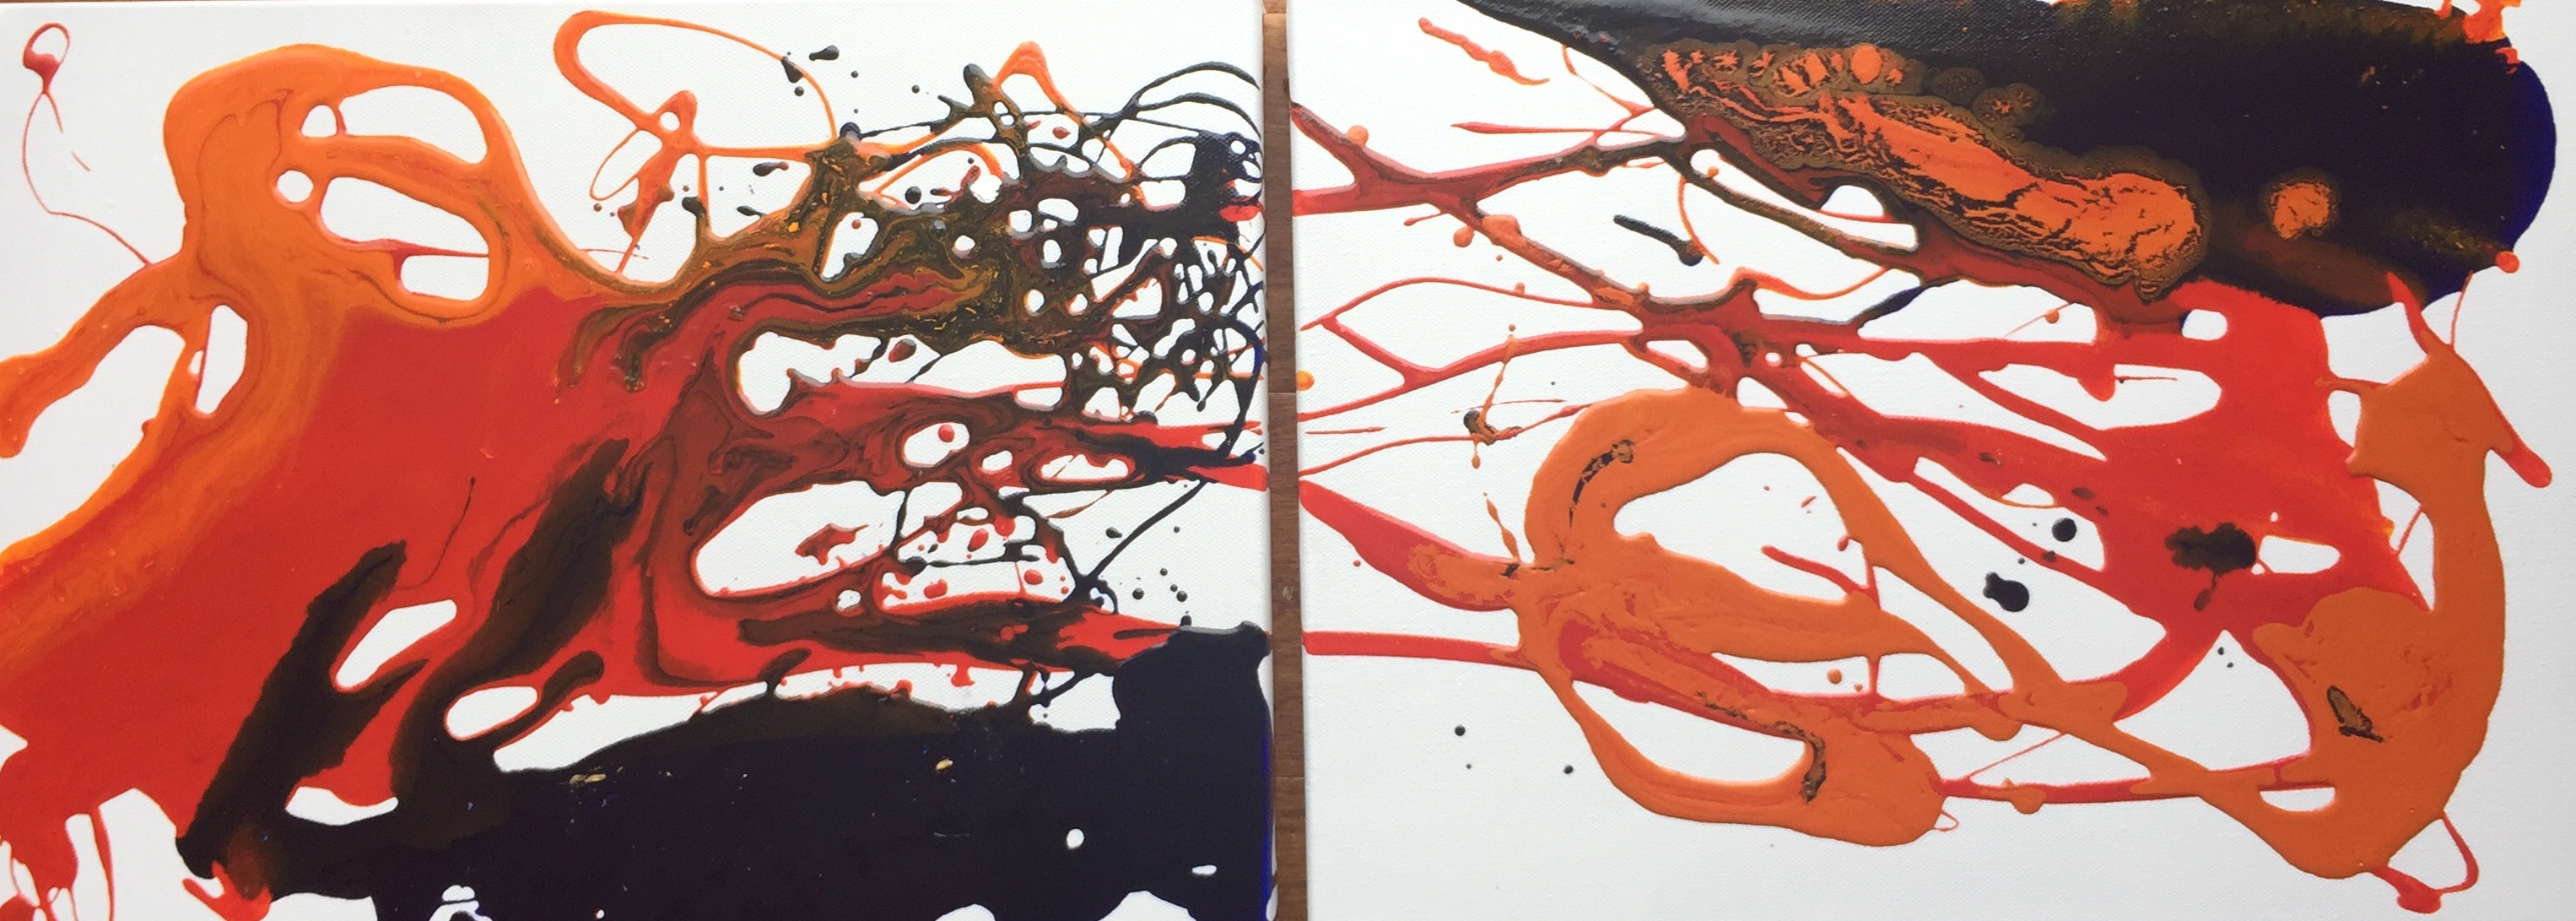 Colours of Grace 1 and 2 by Christine Long - 12 x 16 inches on canvas